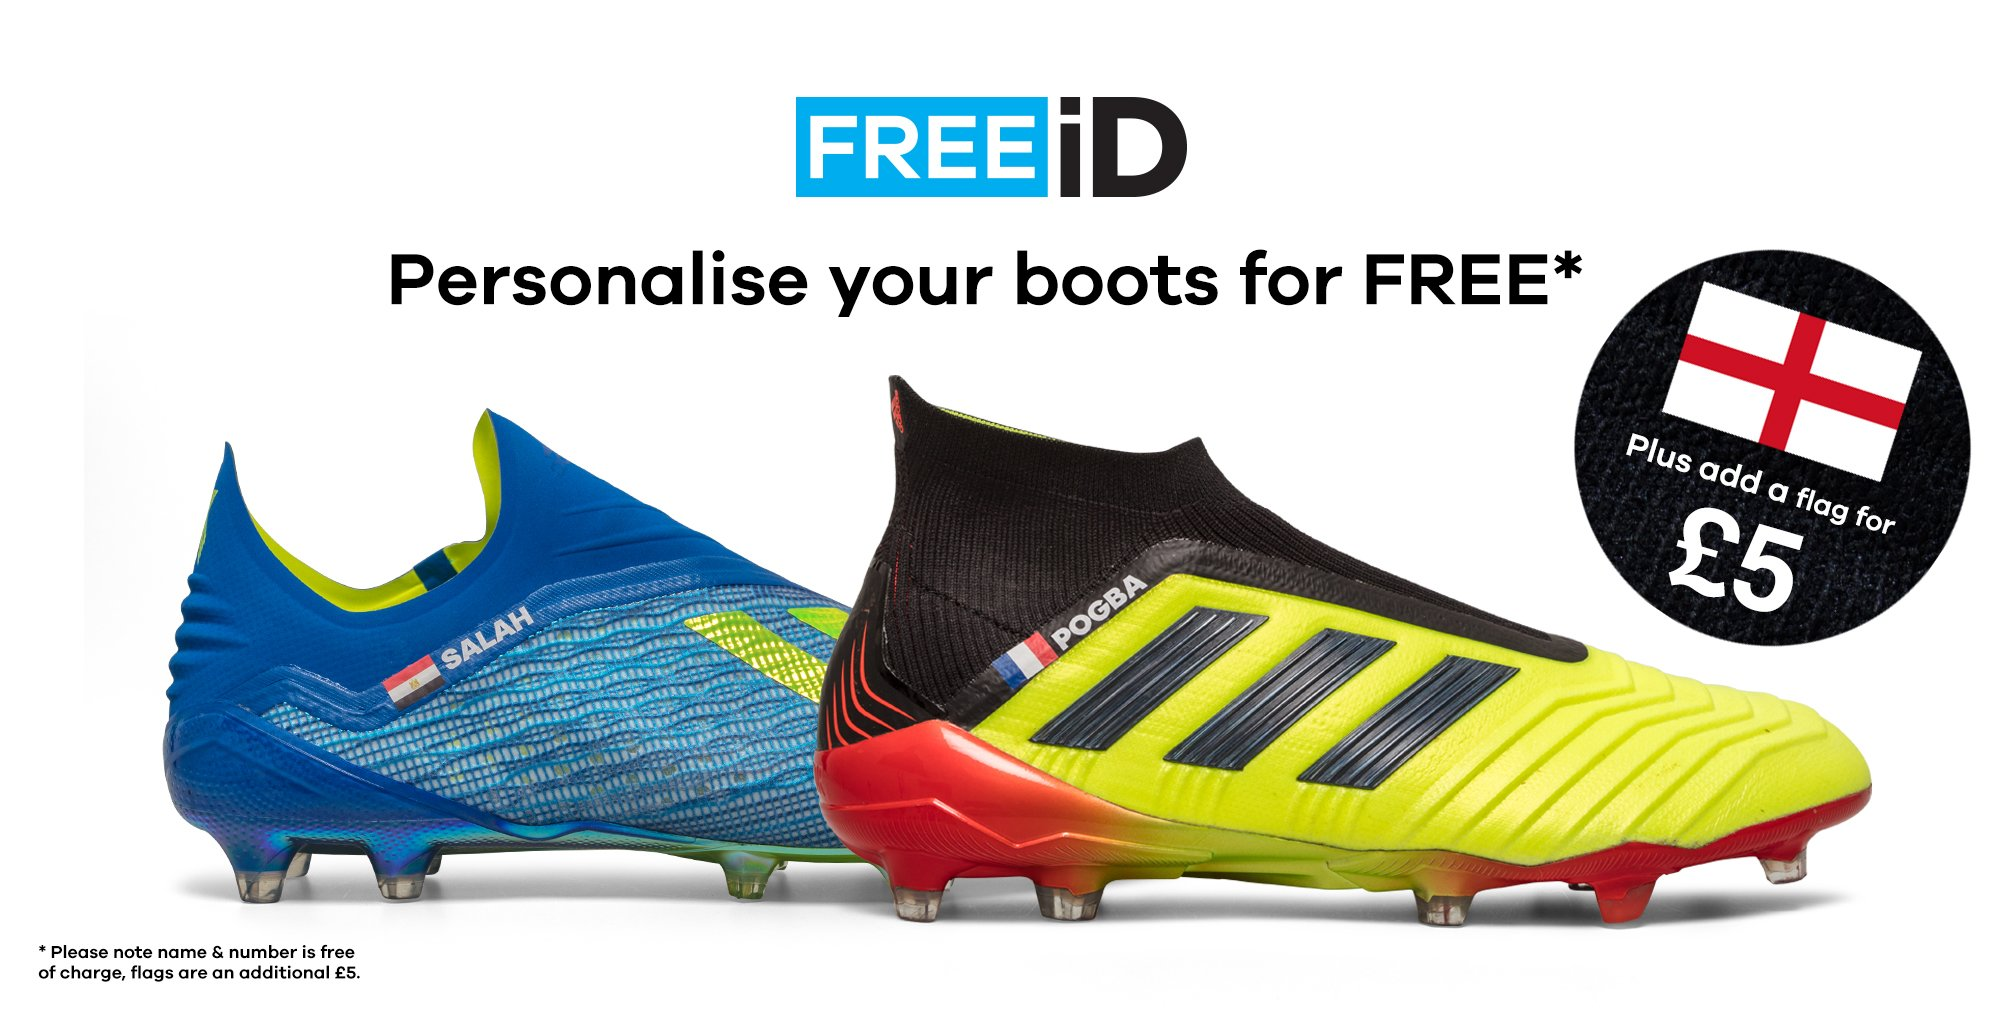 d93cd8a92 FREE iD - FREE Boot Personalisation